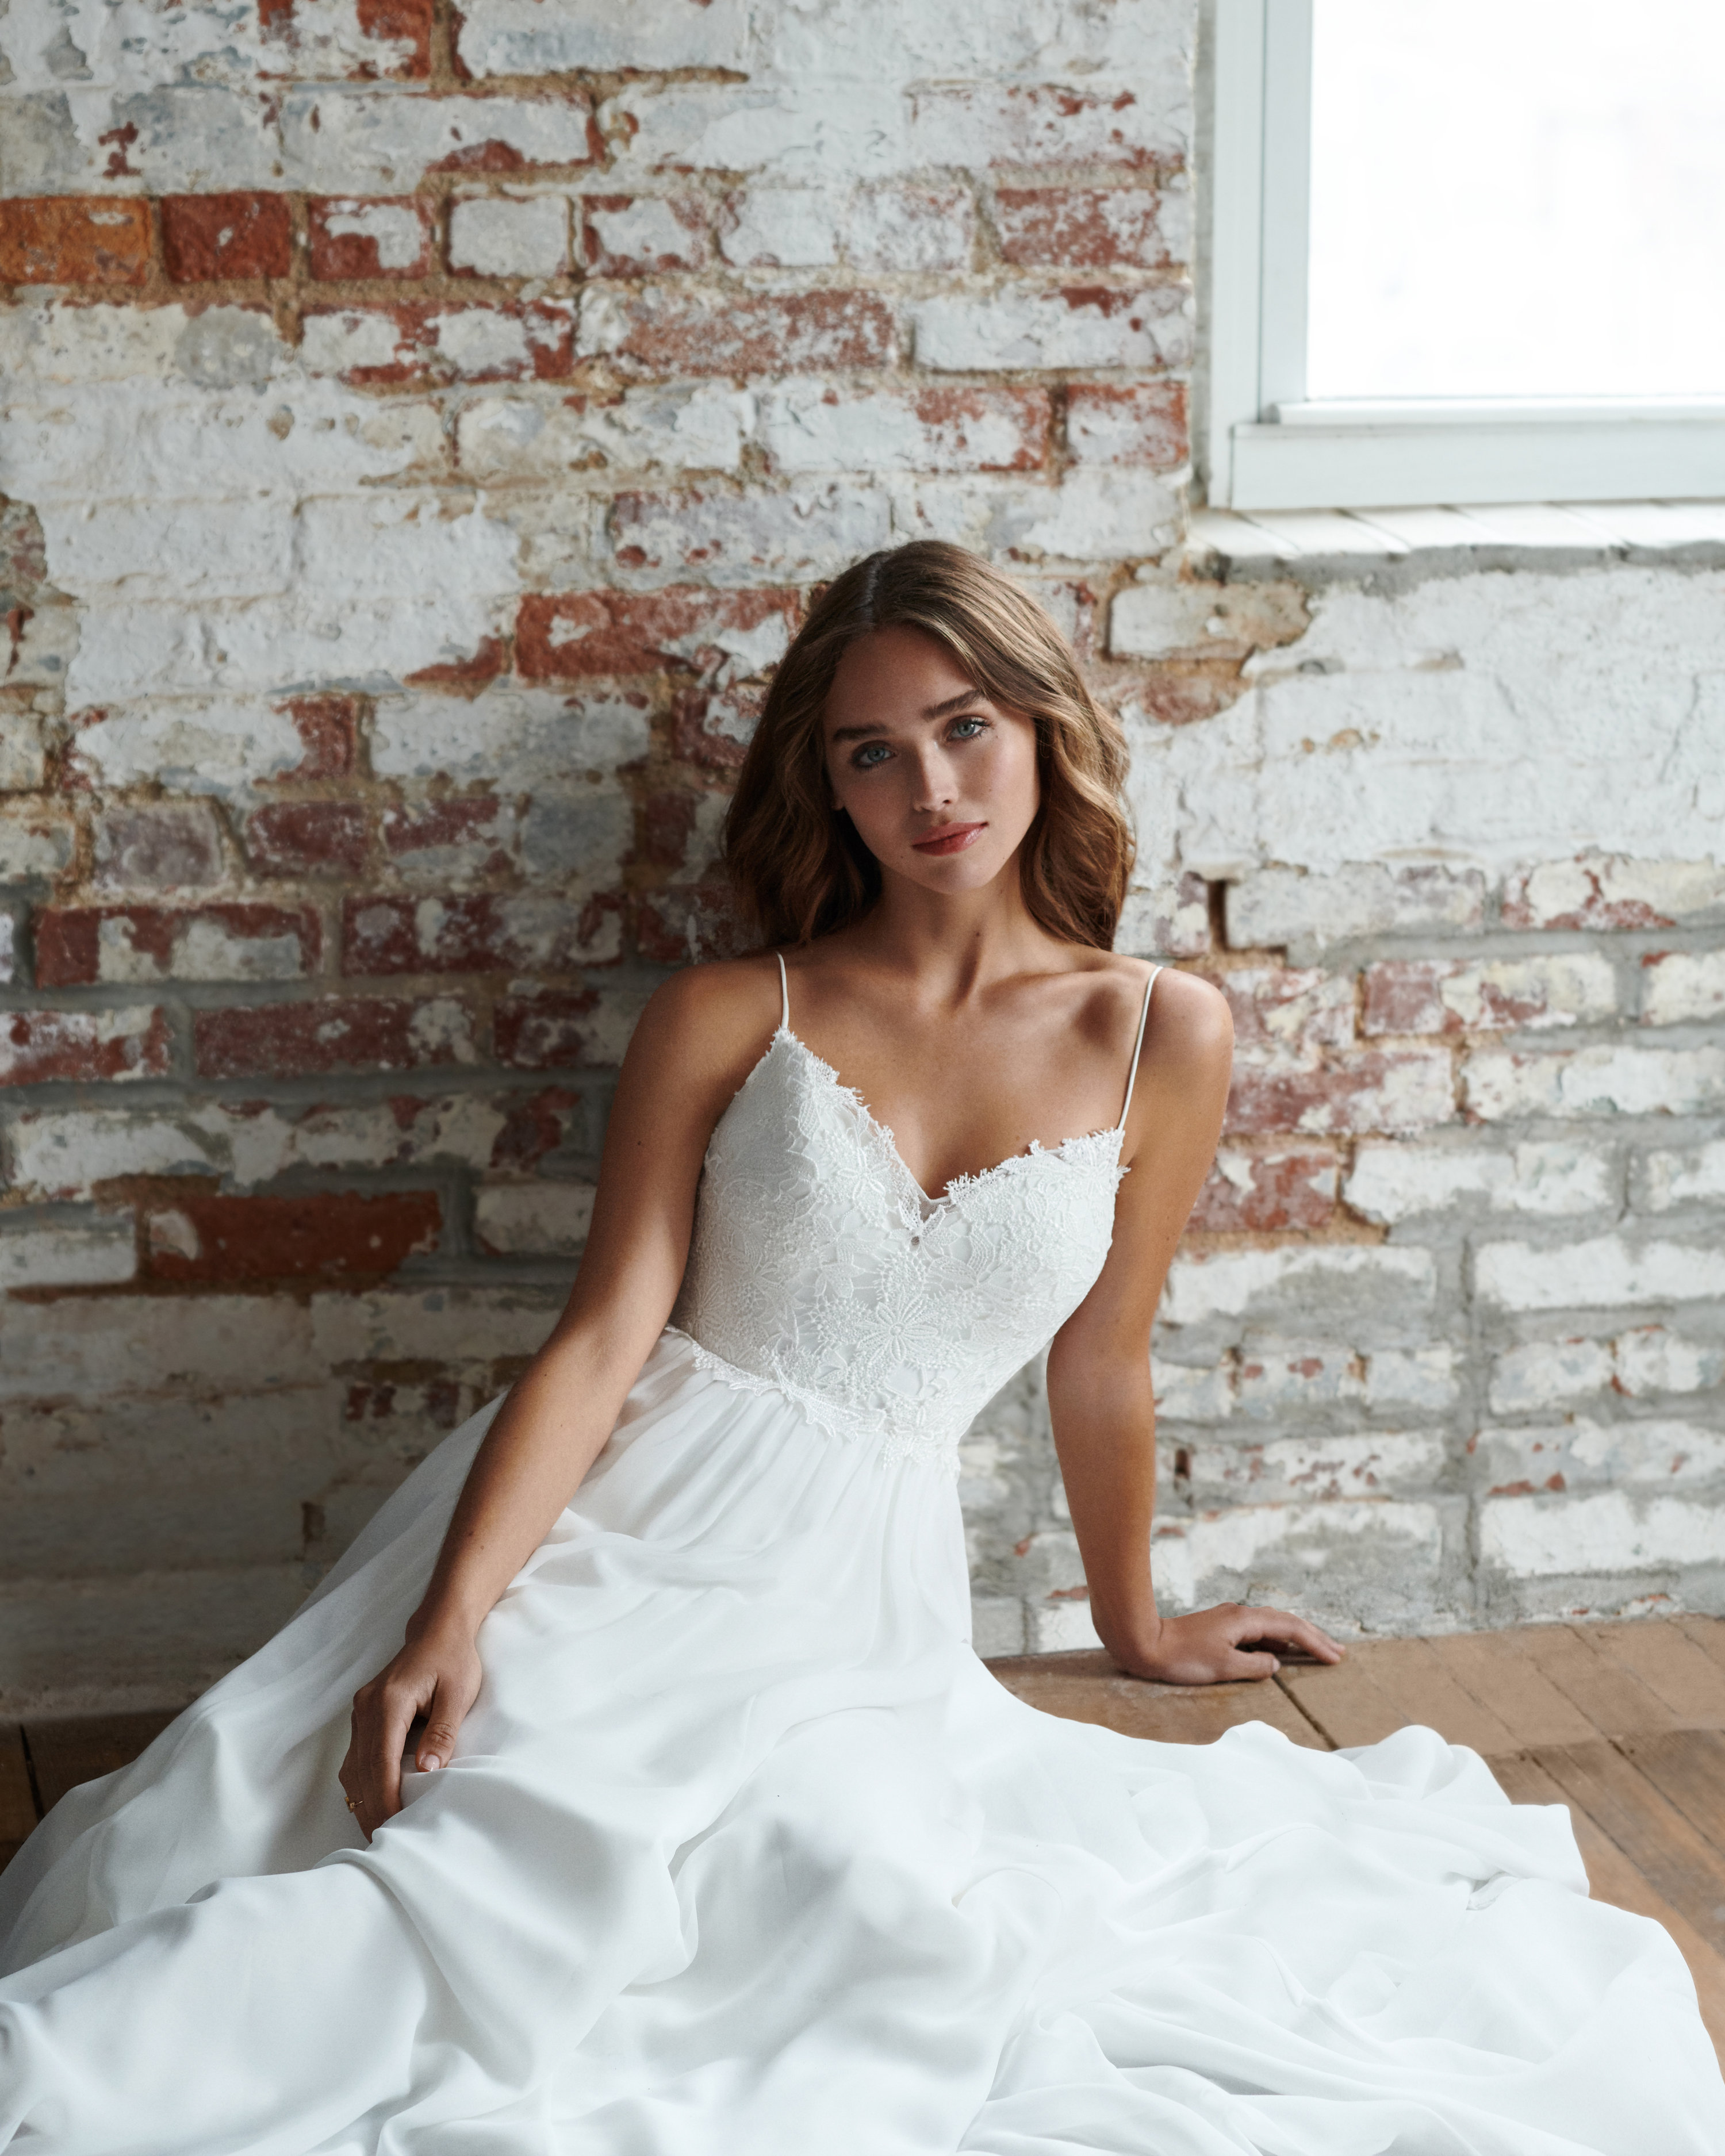 Bridal Gowns And Wedding Dresses By Jlm Couture Style 7850 Lyle